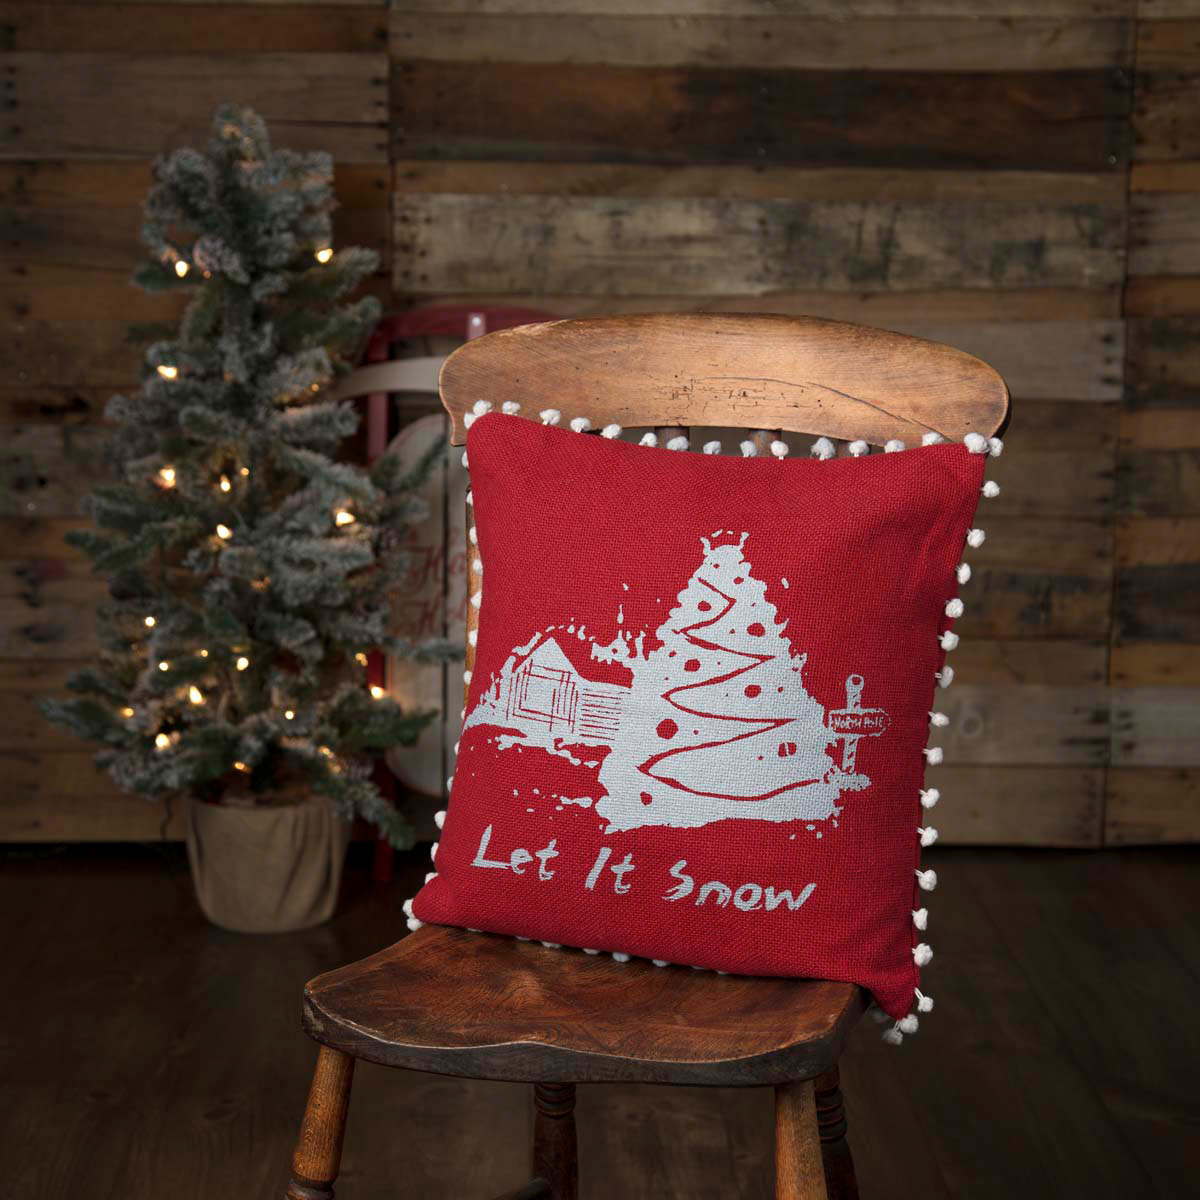 Burlap Red Let It Snow Pillow 16 Filled